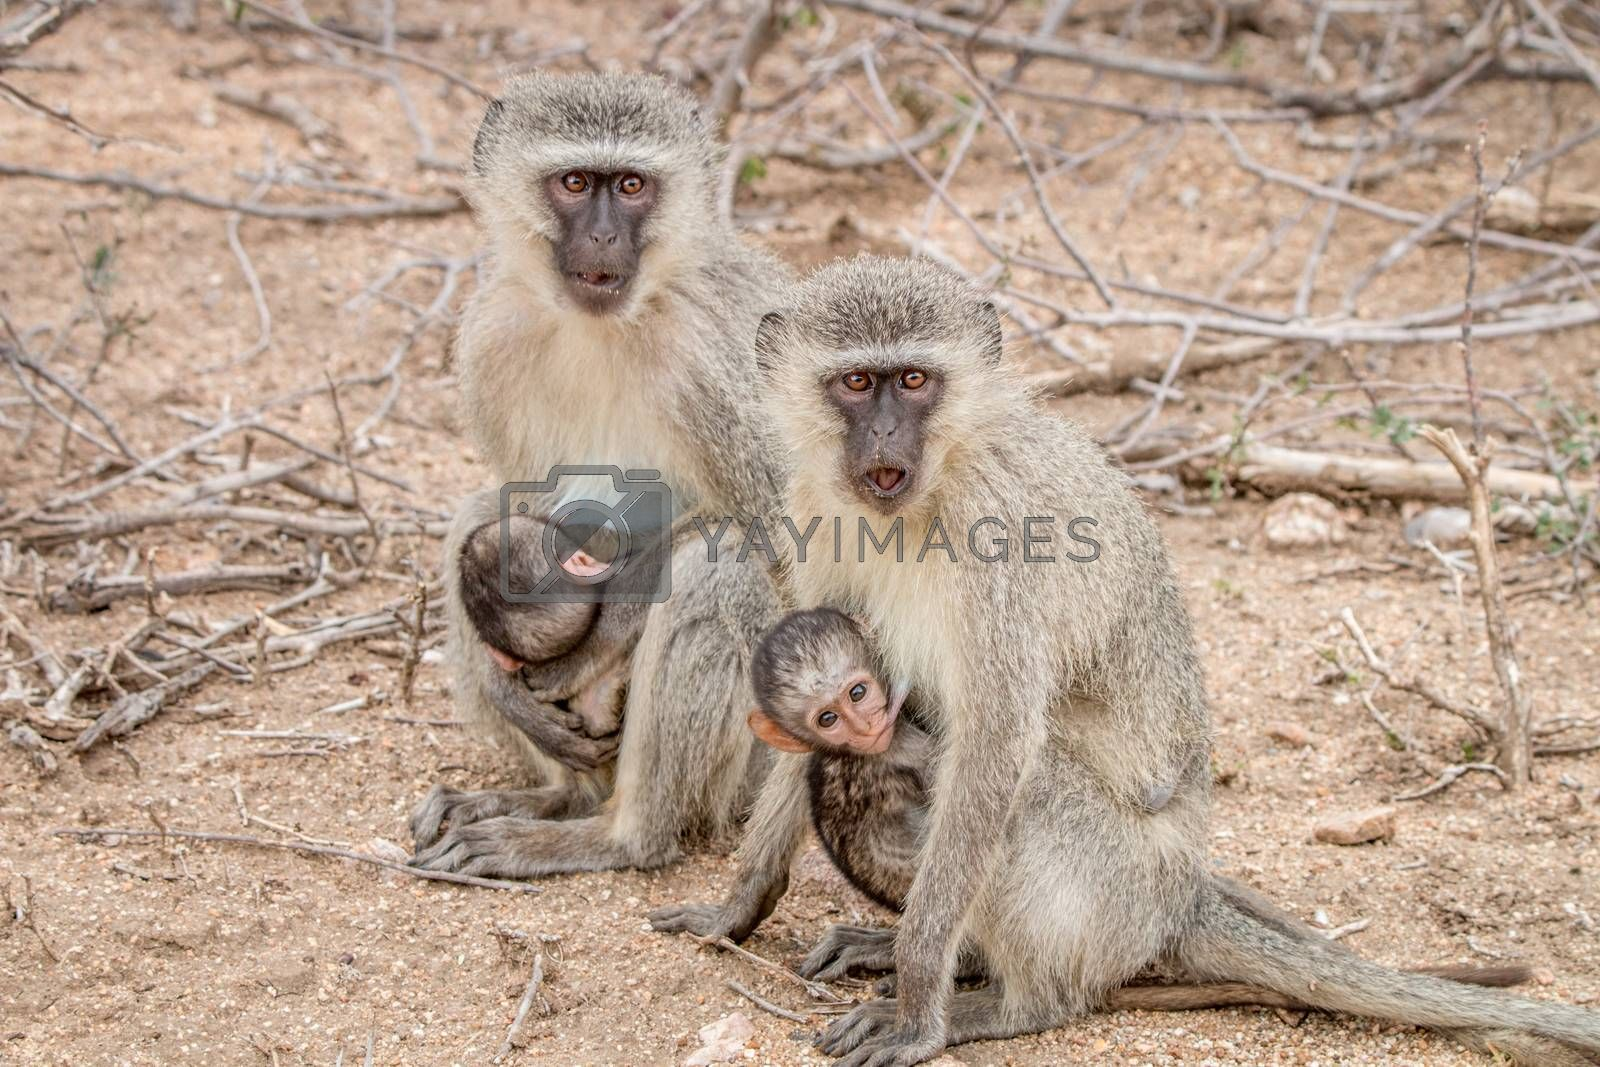 Two Vervet monkeys with two babies in the Kruger National Park, South Africa.